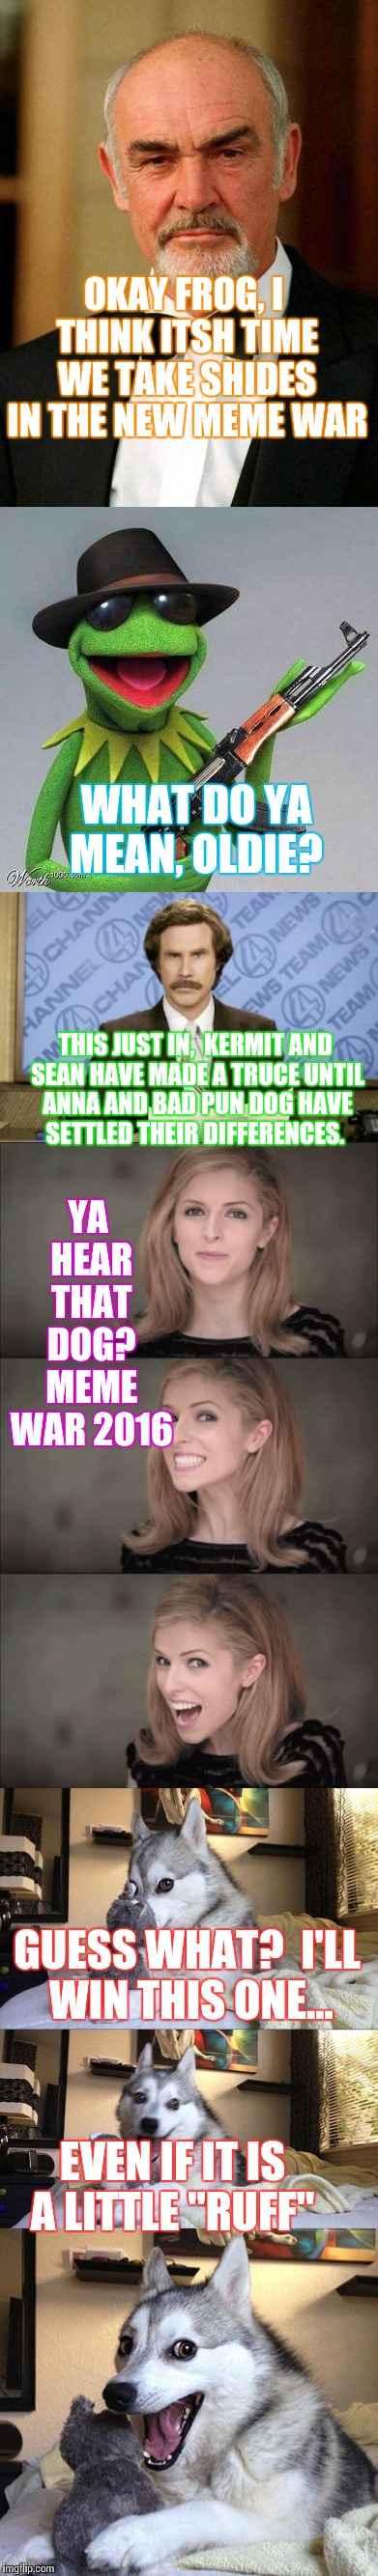 "Meme war 2016!  |  OKAY FROG, I THINK ITSH TIME WE TAKE SHIDES IN THE NEW MEME WAR; WHAT DO YA MEAN, OLDIE? YA HEAR THAT DOG? MEME WAR 2016; THIS JUST IN,  KERMIT AND SEAN HAVE MADE A TRUCE UNTIL ANNA AND BAD PUN DOG HAVE SETTLED THEIR DIFFERENCES. GUESS WHAT?  I'LL WIN THIS ONE... EVEN IF IT IS A LITTLE ""RUFF"" 